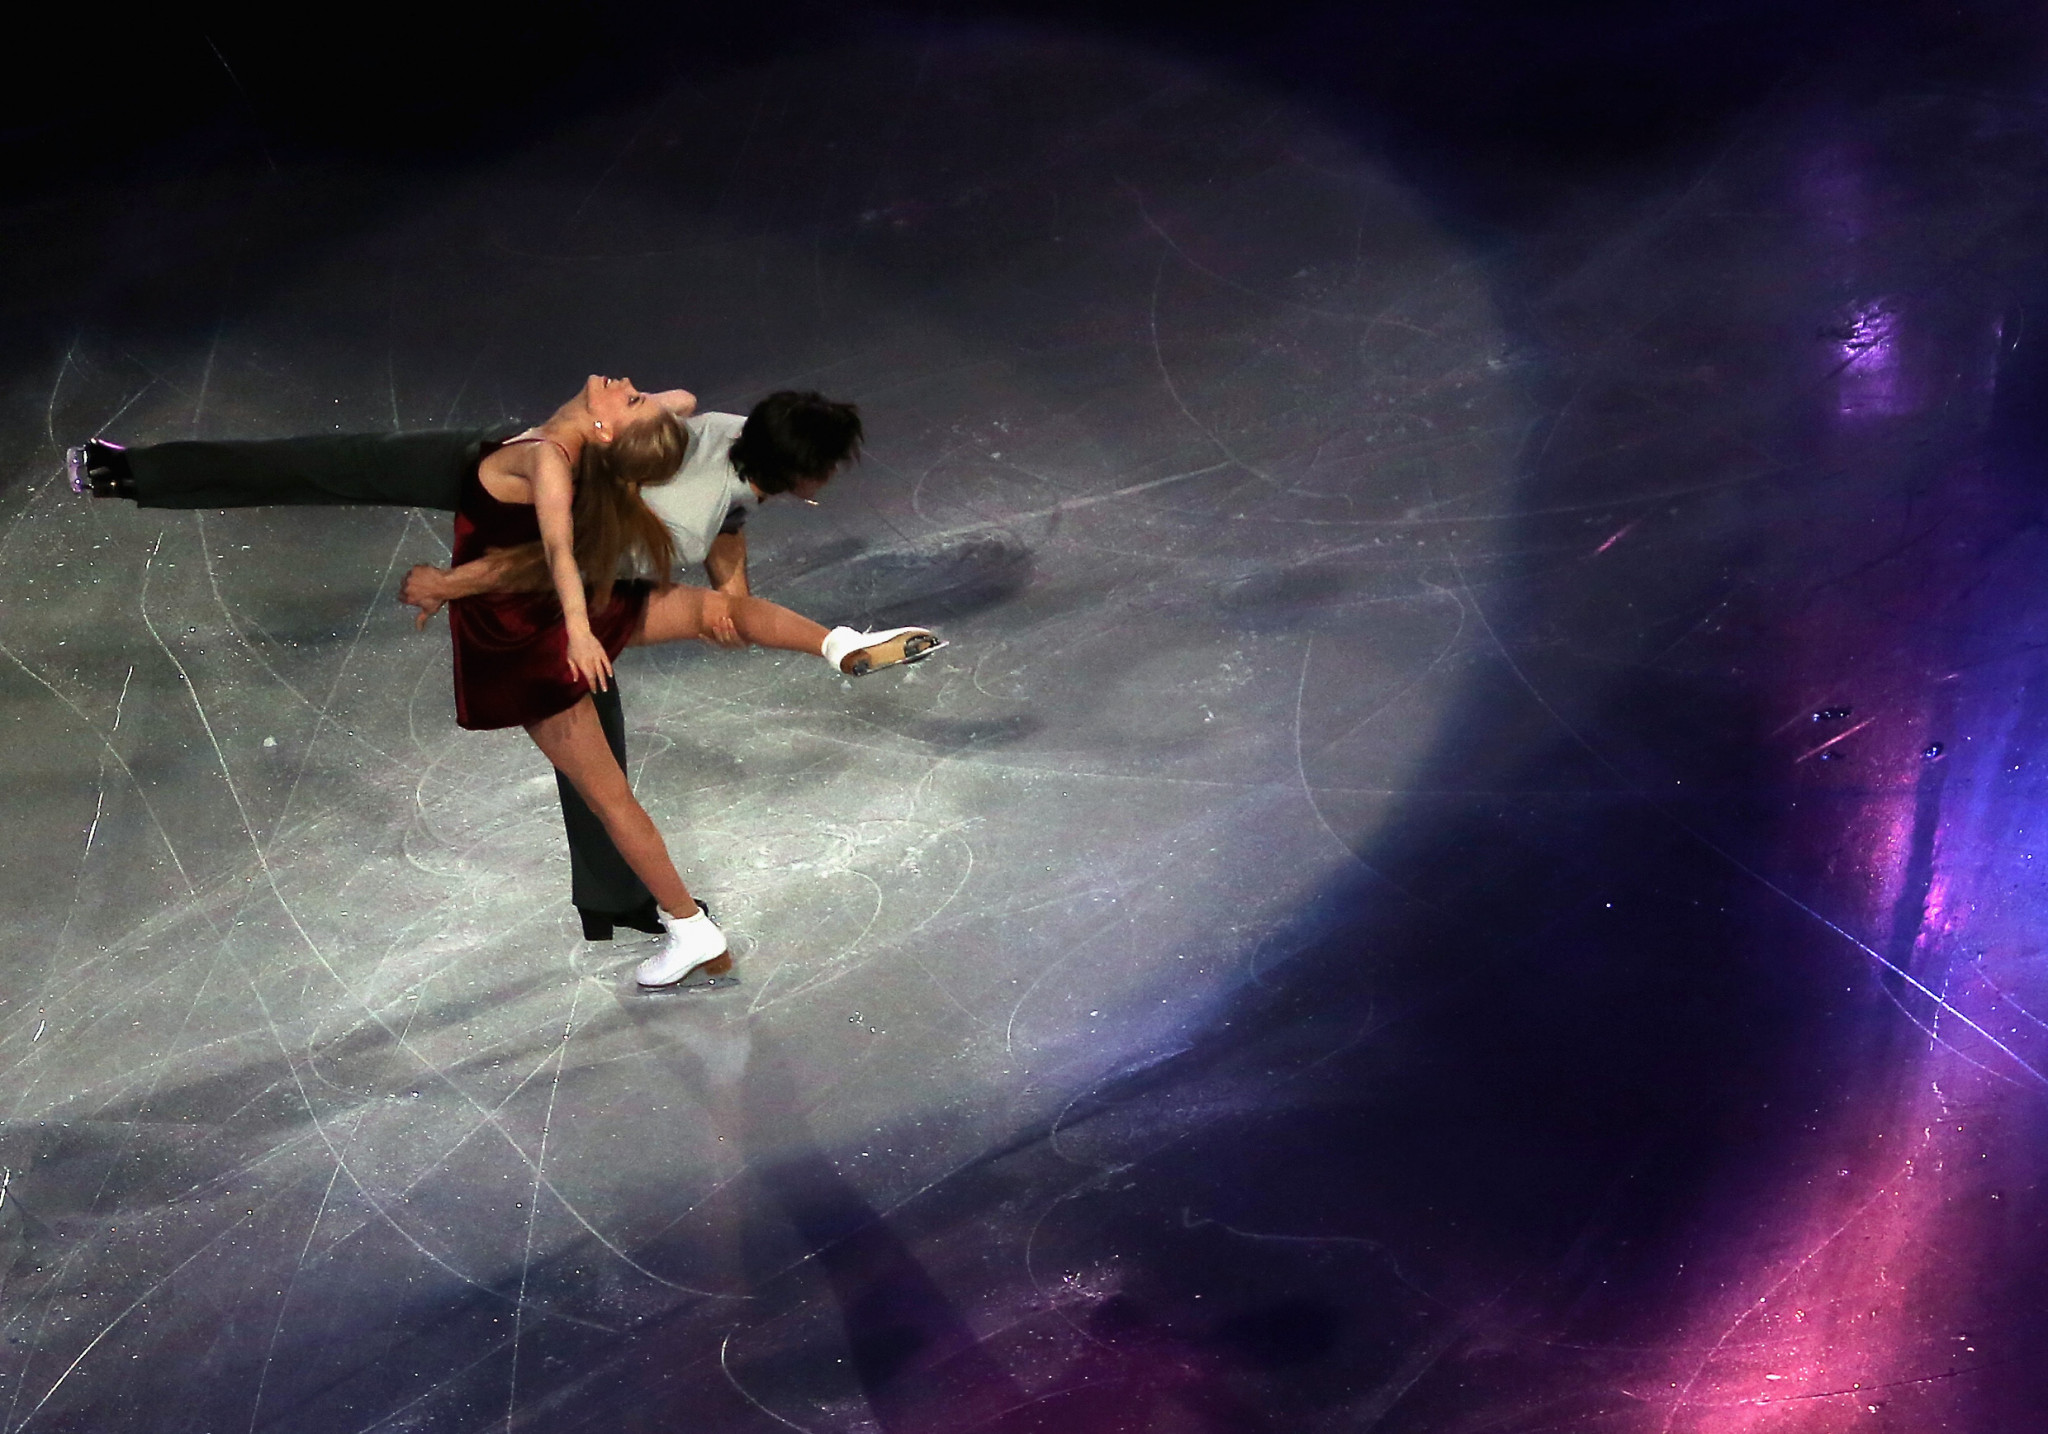 Canada last hosted the ISU World Figure Skating Championships in 2013, in London, Ontario ©Getty Images